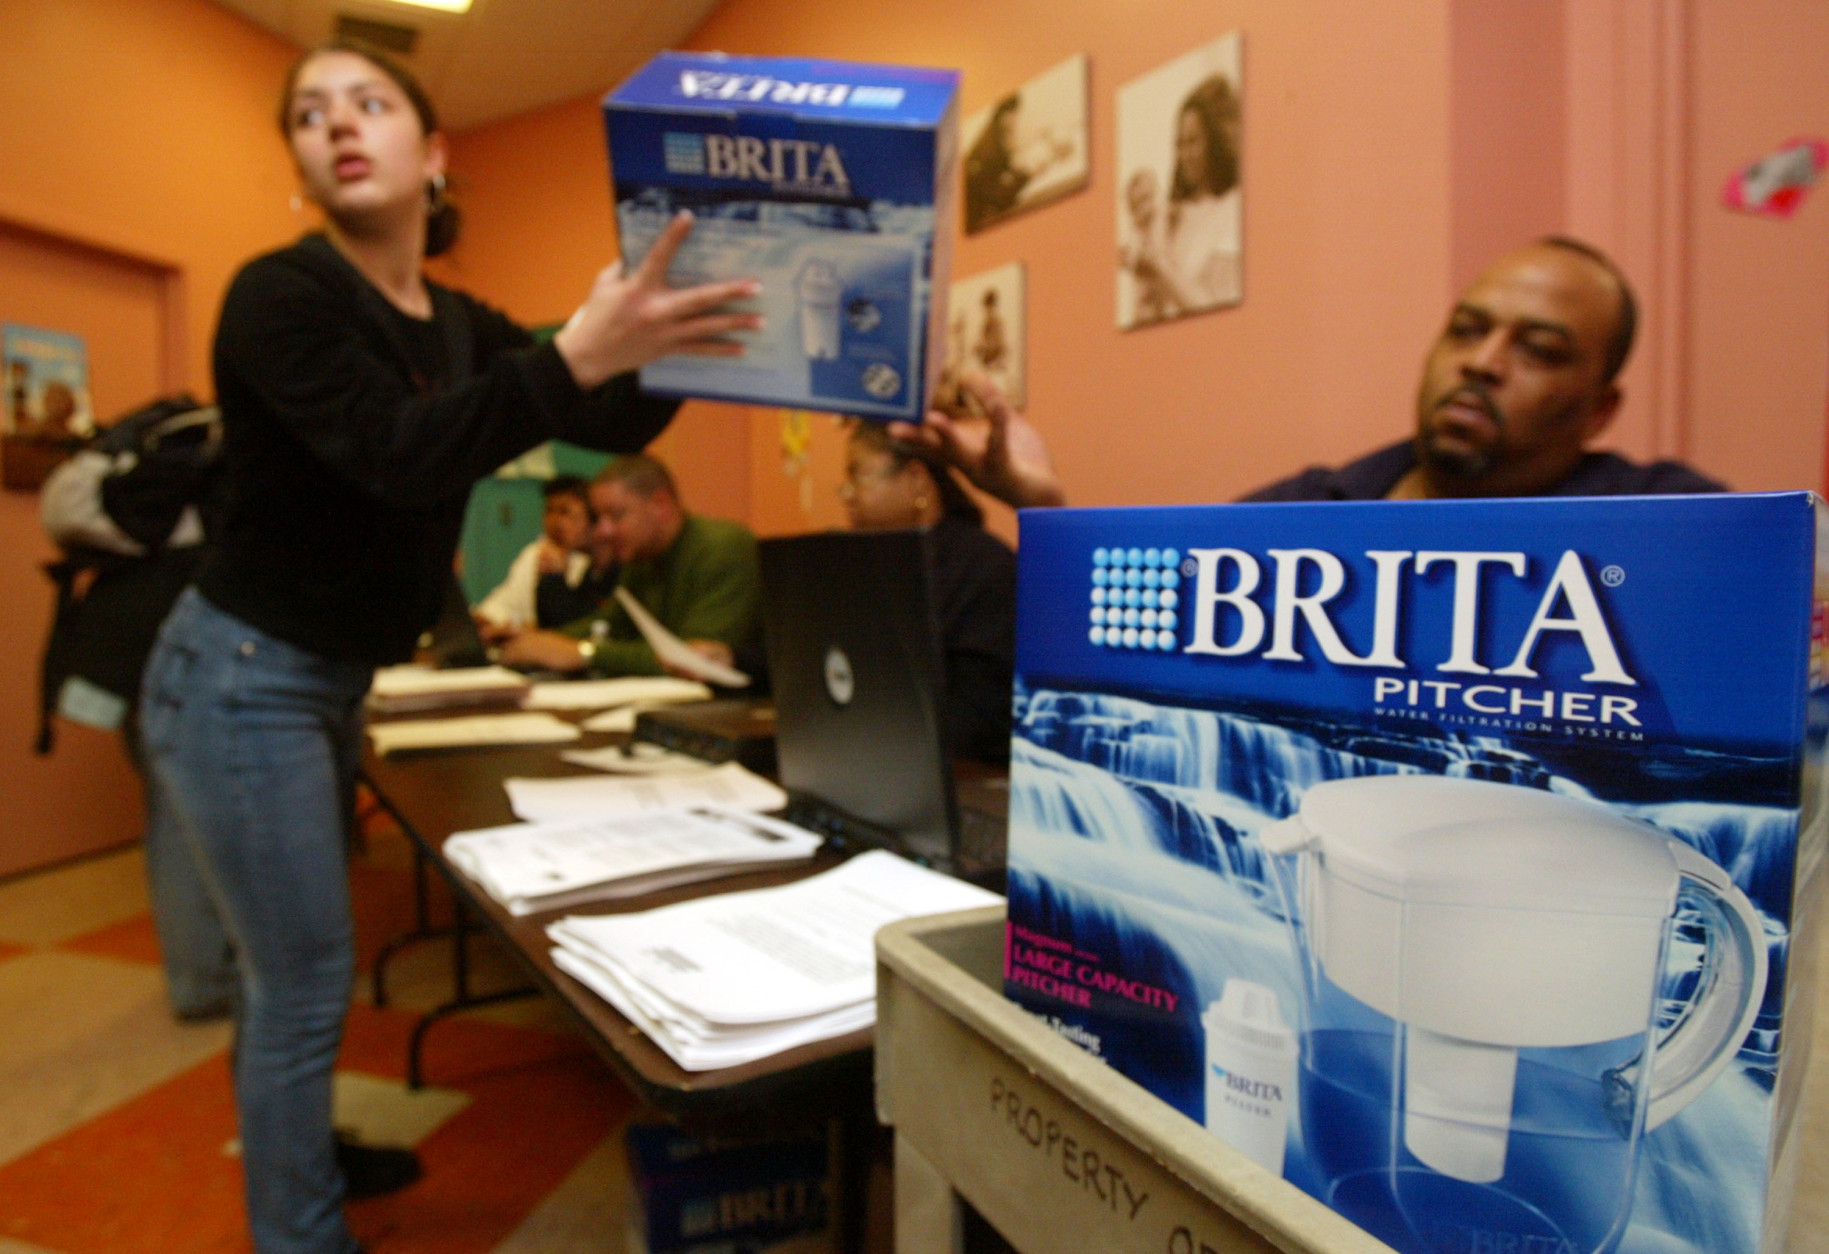 Water filters were handed out during D.C.'s drinking water crisis. (Photo by Alex Wong/Getty Images)